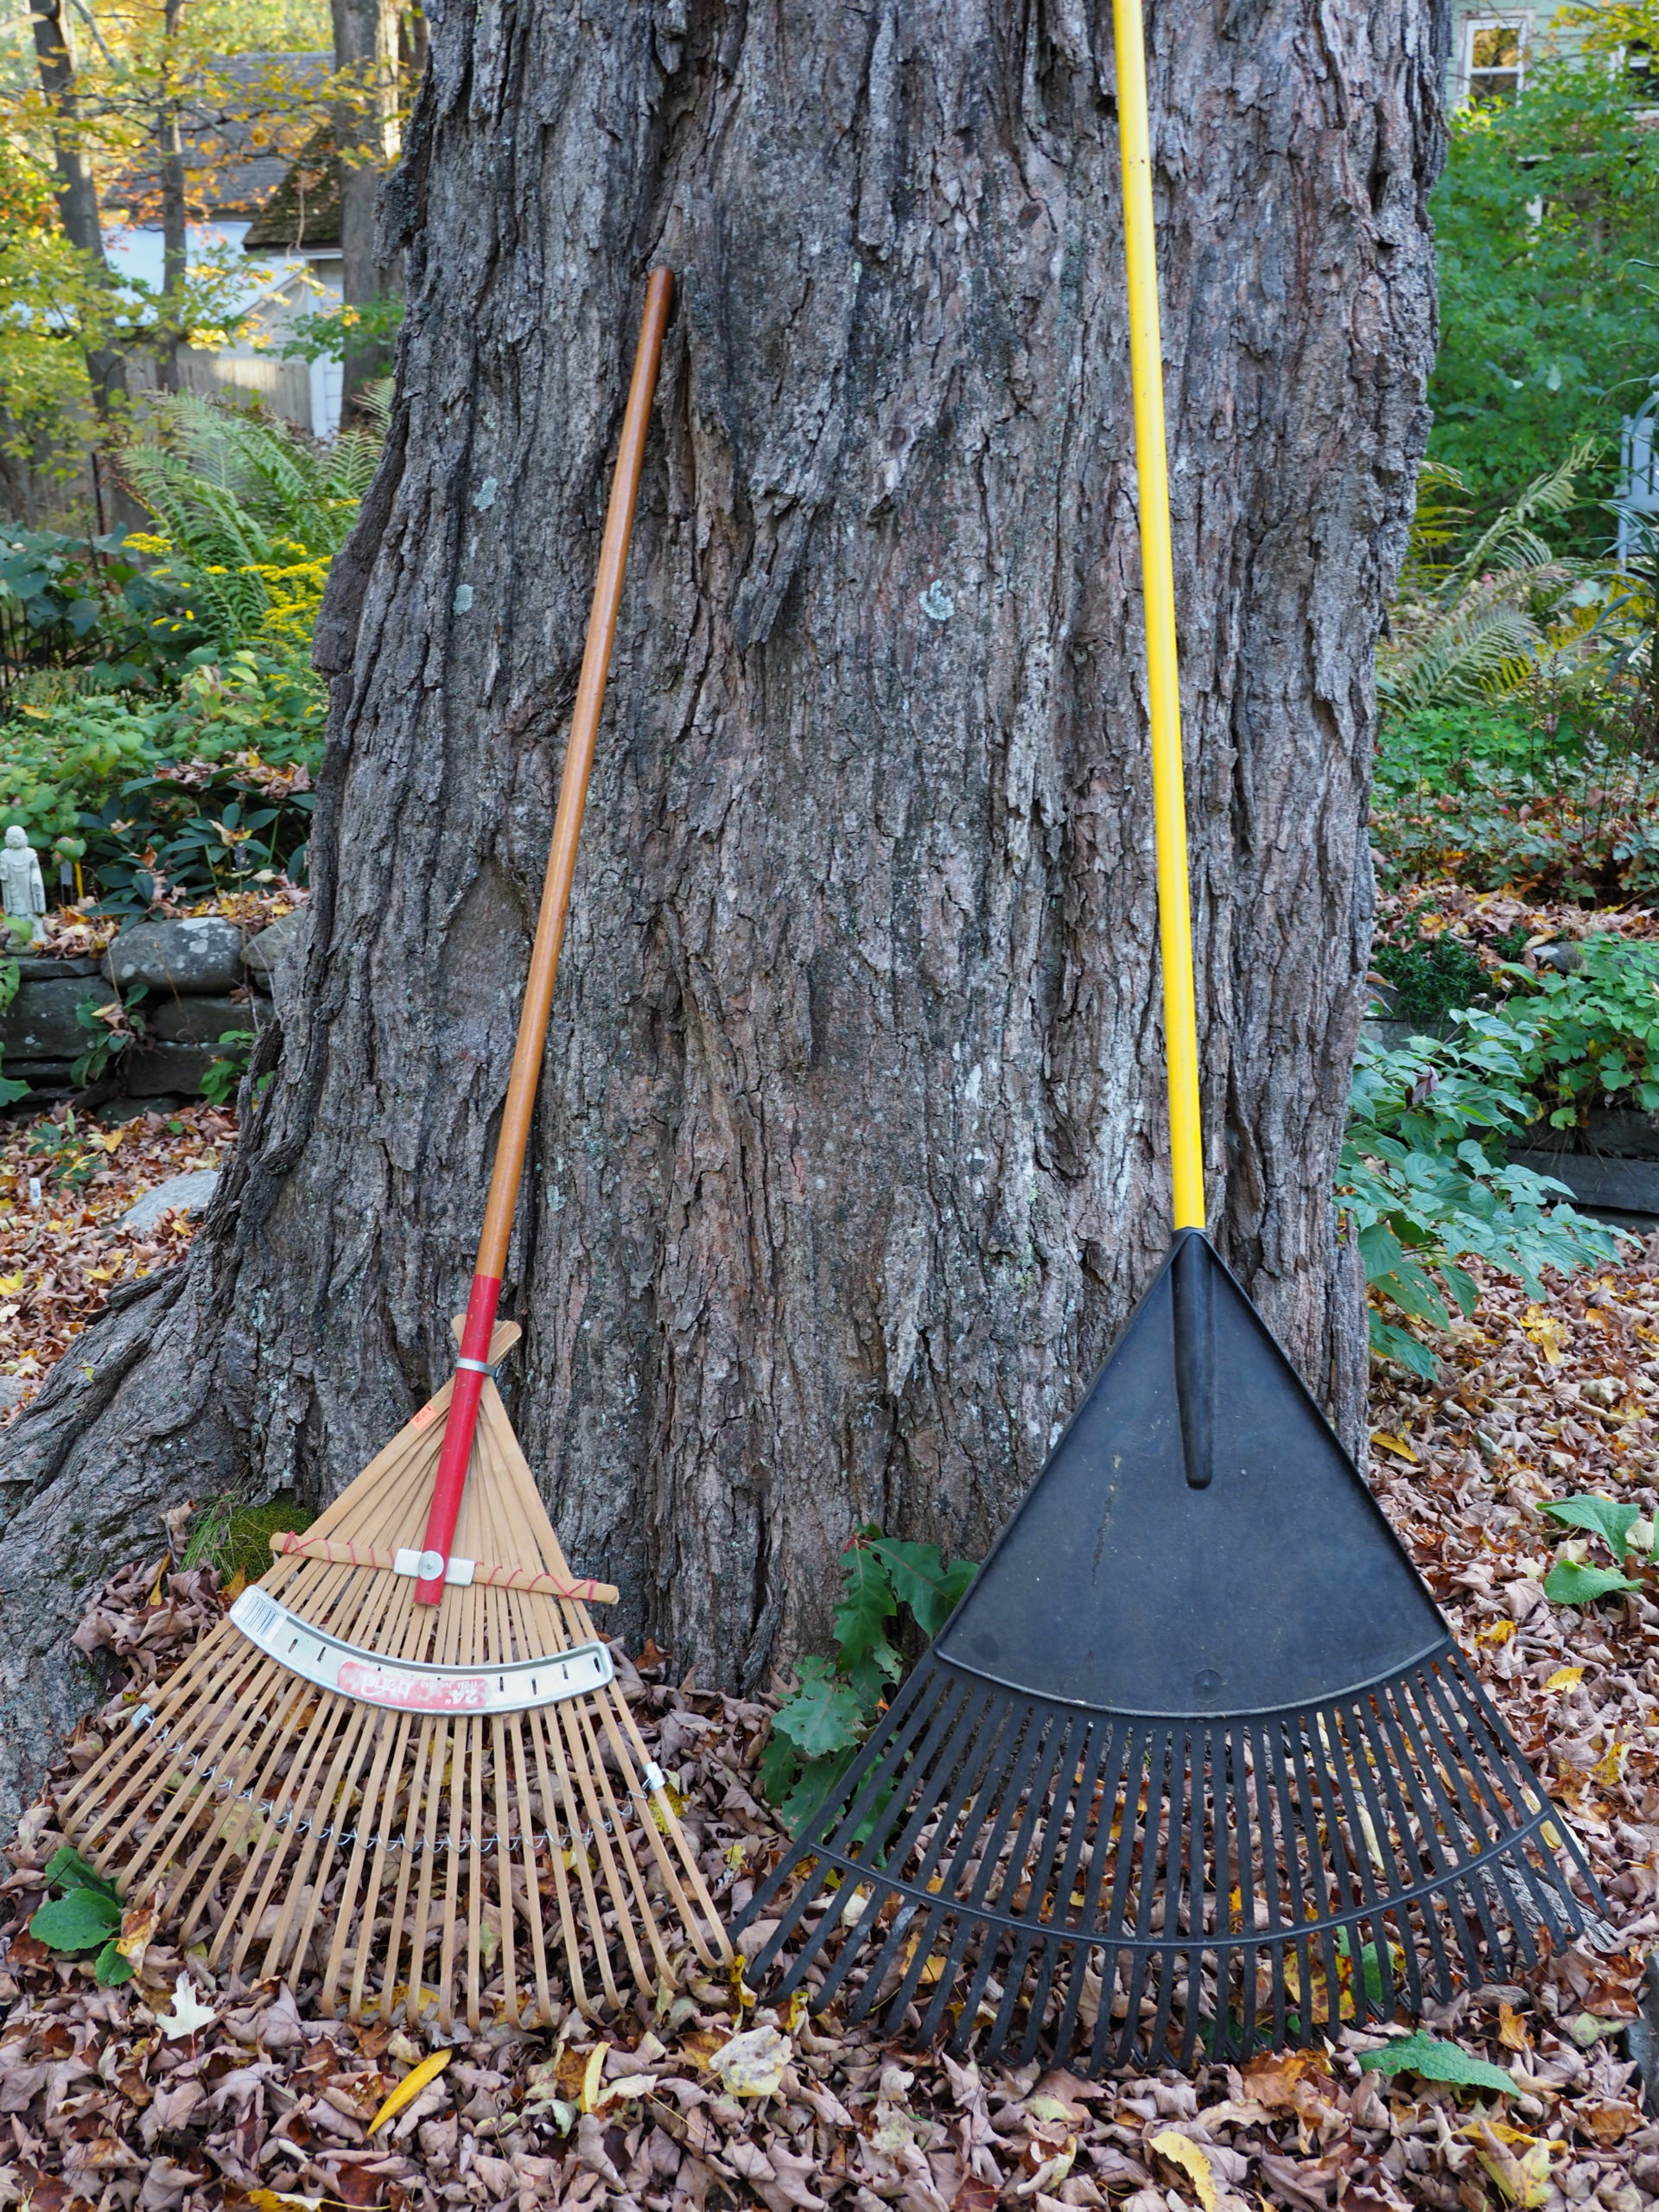 The rake on the left is a wooden tine leaf or lawn rake. The one on the right is a much wider plastic rake. Metal lawn rakes look similar to the wooden one but tend to be heavier. Remember, the wider the rake, the more weight you have to pull when raking the leaves.